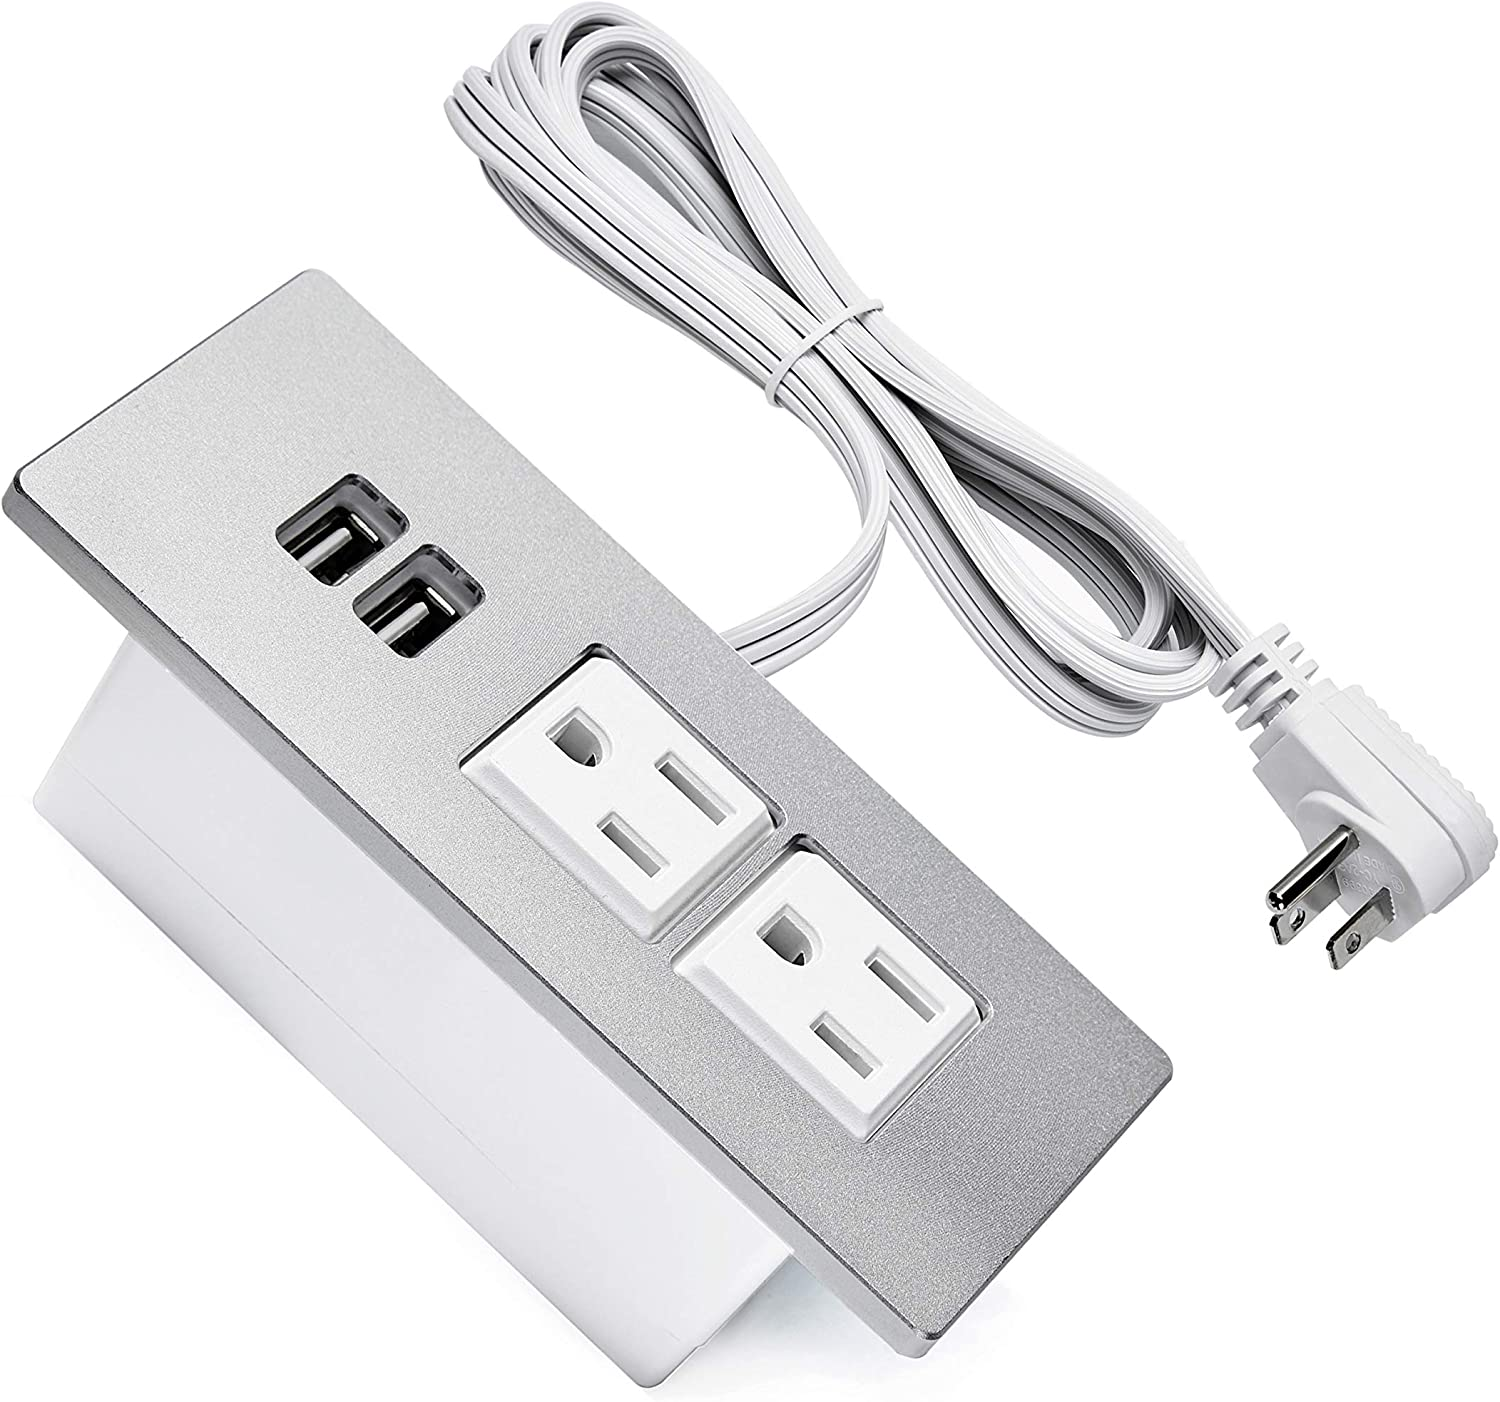 Desk Power Grommet USB Outlet Build-in 2-Outlet and 2 USB Charging Ports with 6.56 FT Extension Cord, Recessed Outlet Power Socket with Outlet Covers for Cabinet Home and Office, Flat Plug (Silver)